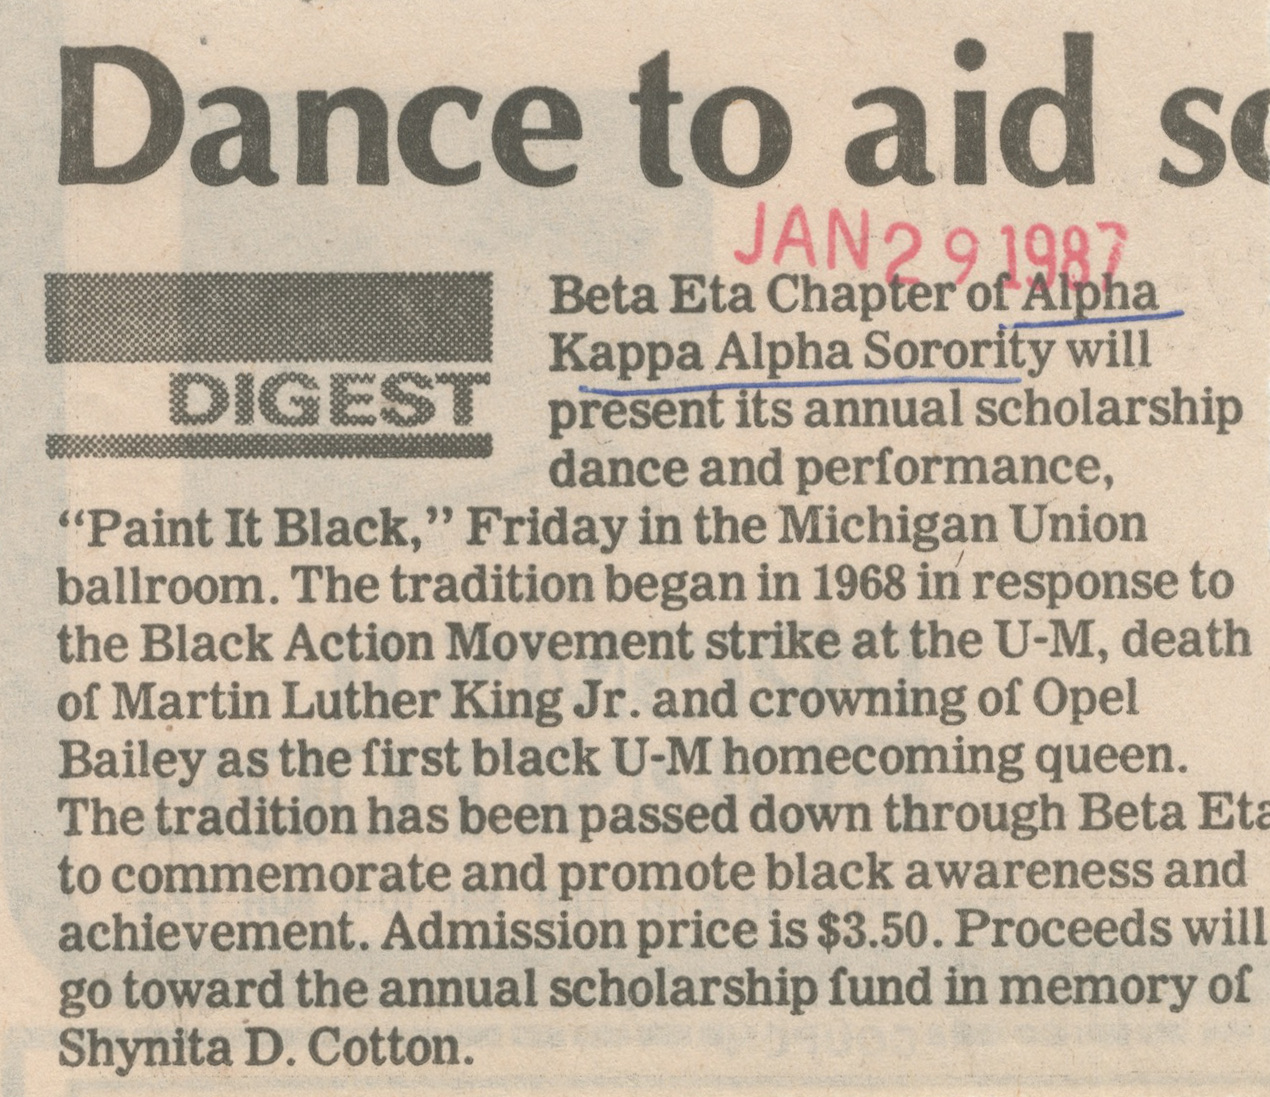 Dance To Aid Sorority image